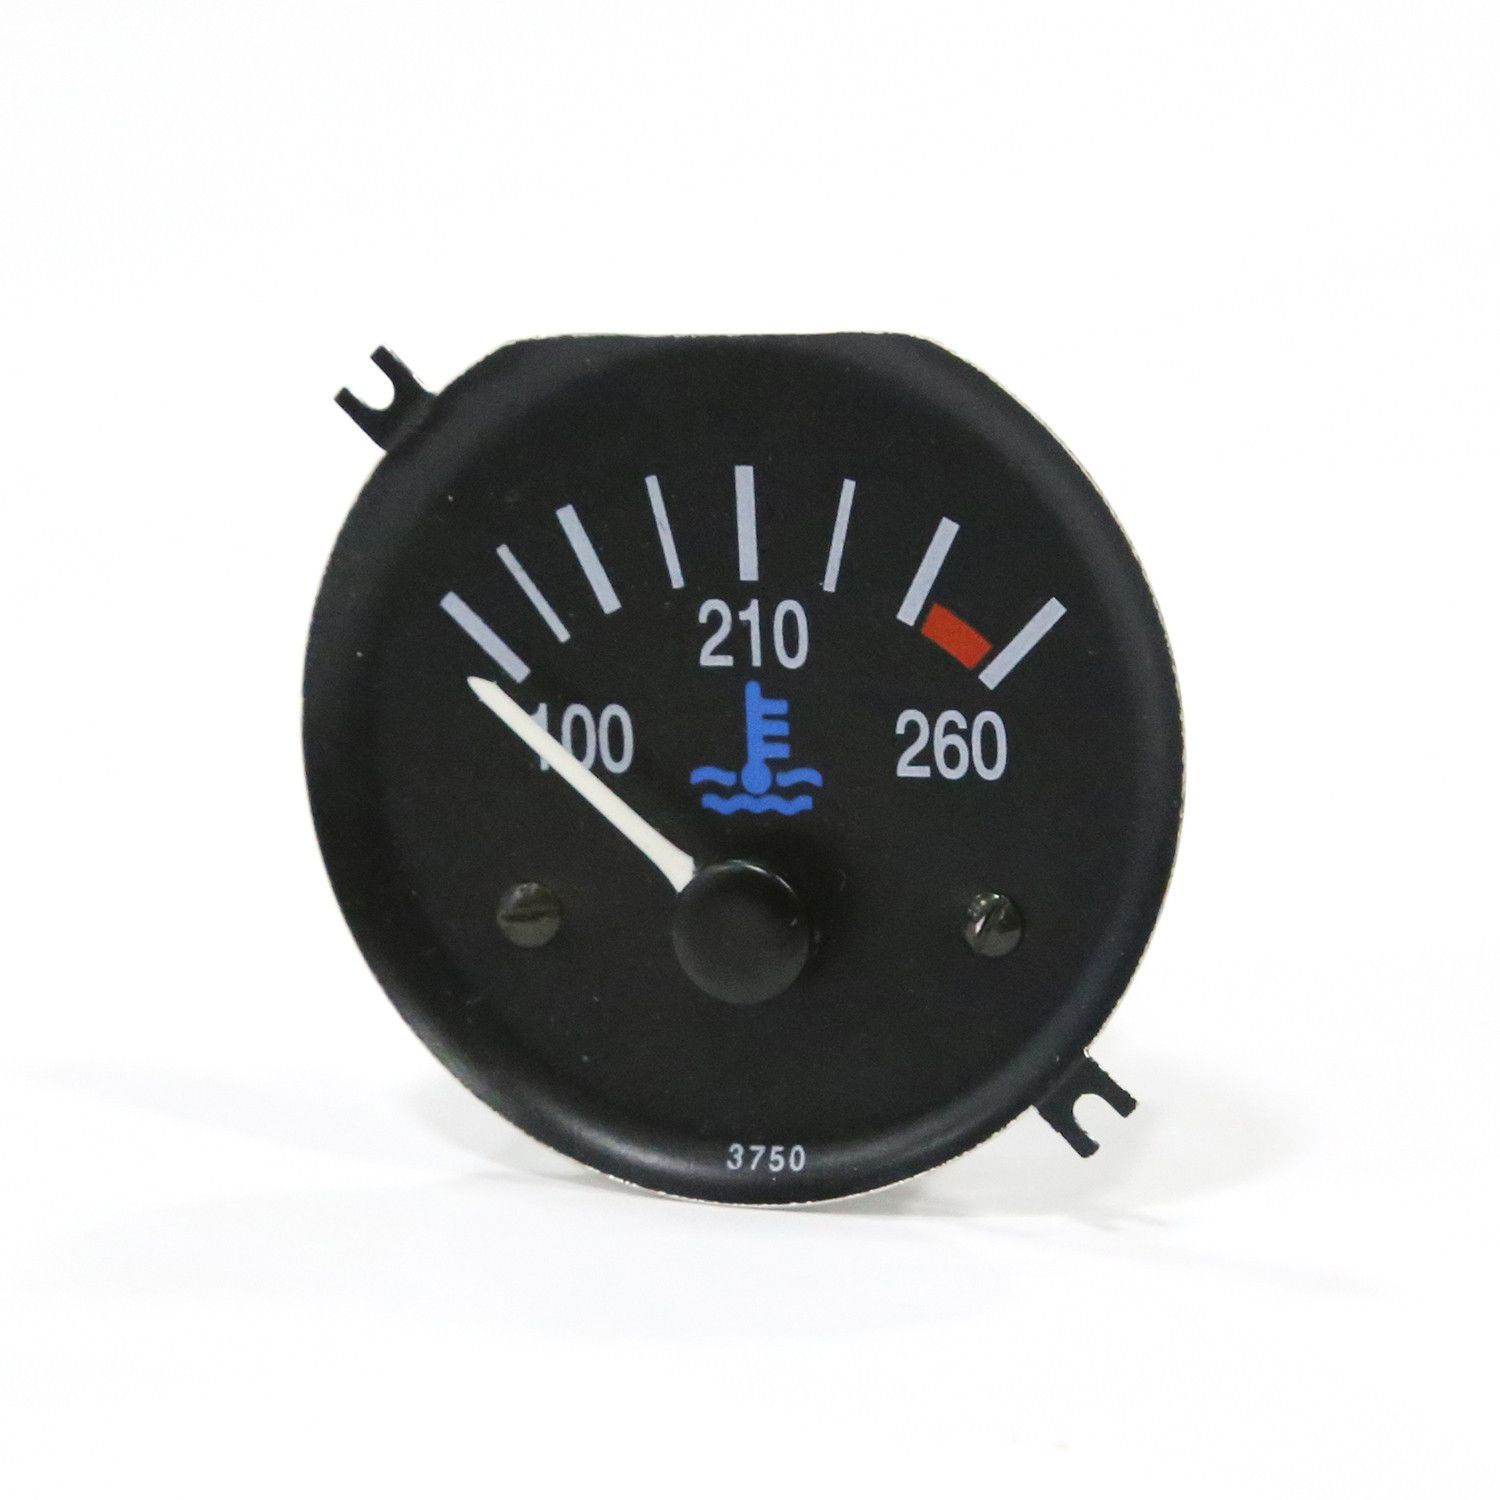 engine temperature gauge 87 91 jeep wrangler yj [ 1500 x 1500 Pixel ]